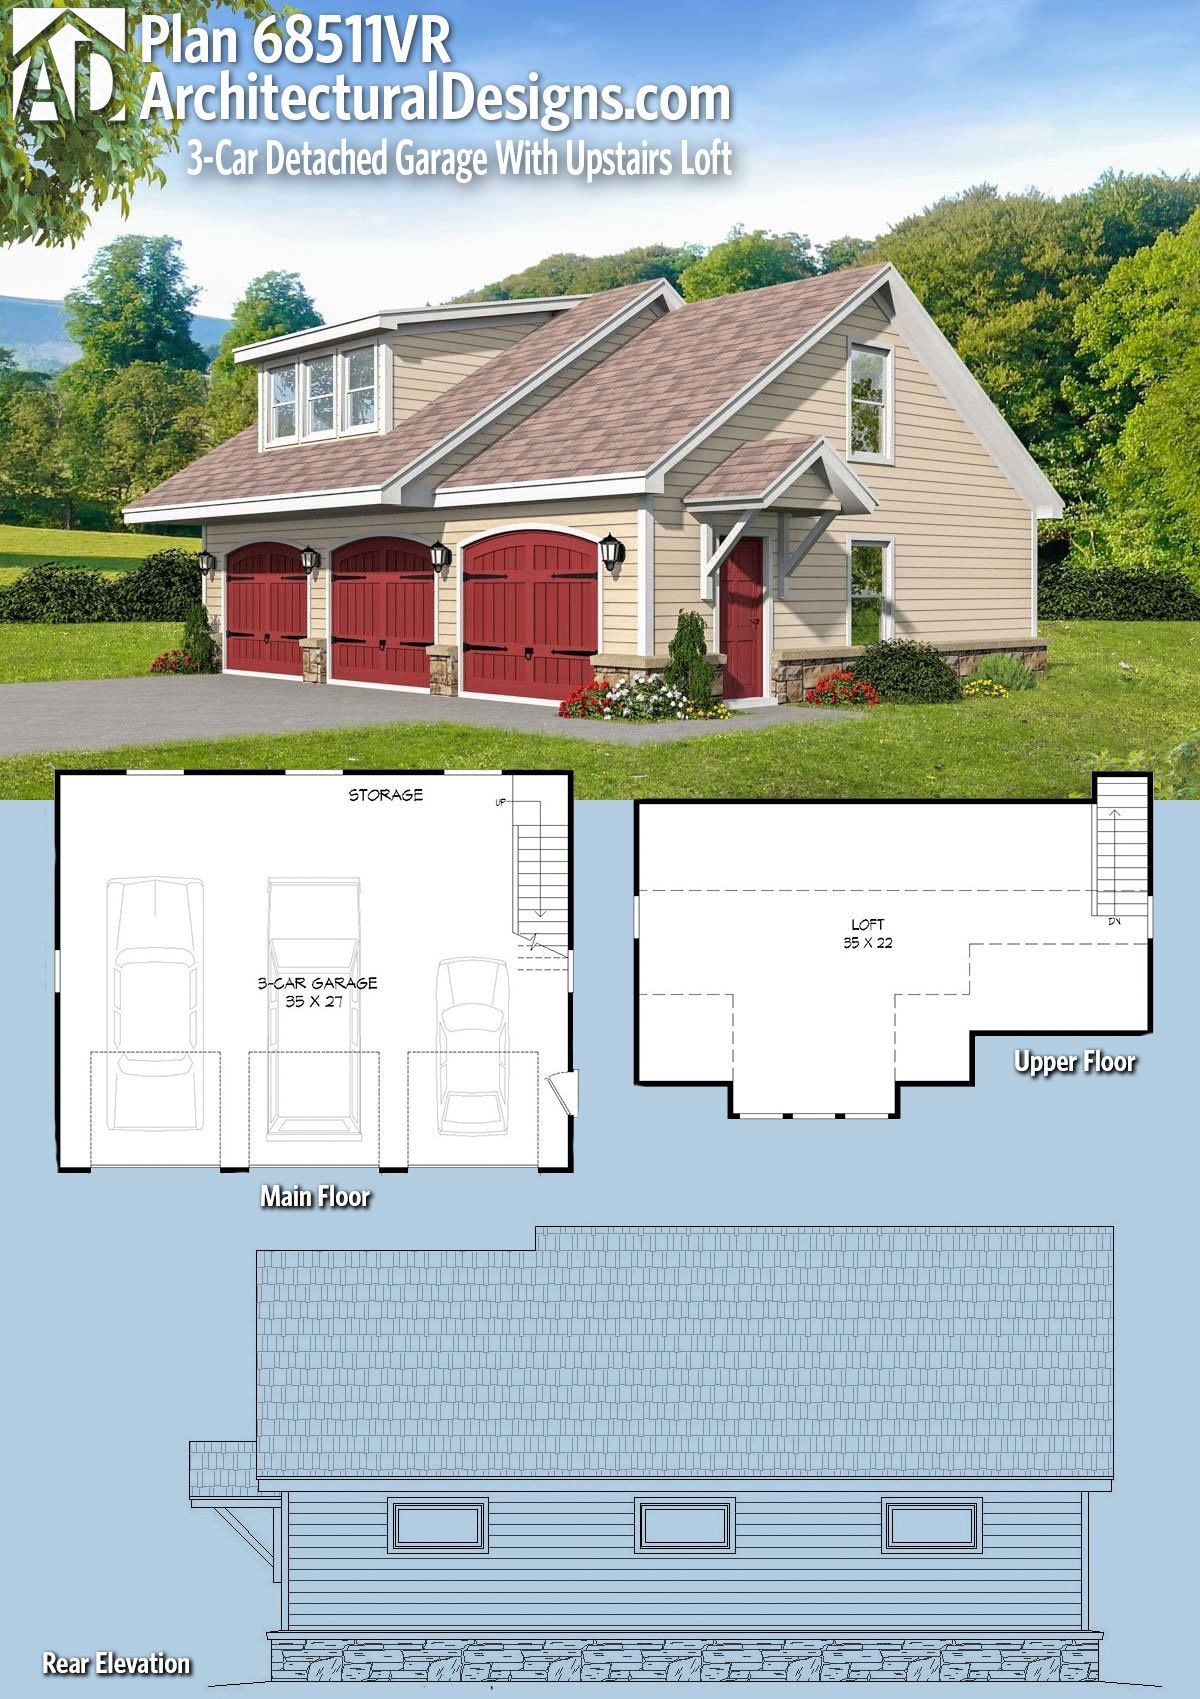 Plan 68511vr 3 Car Detached Garage With Upstairs Loft Carriage House Plans Garage Design Architectural Design House Plans